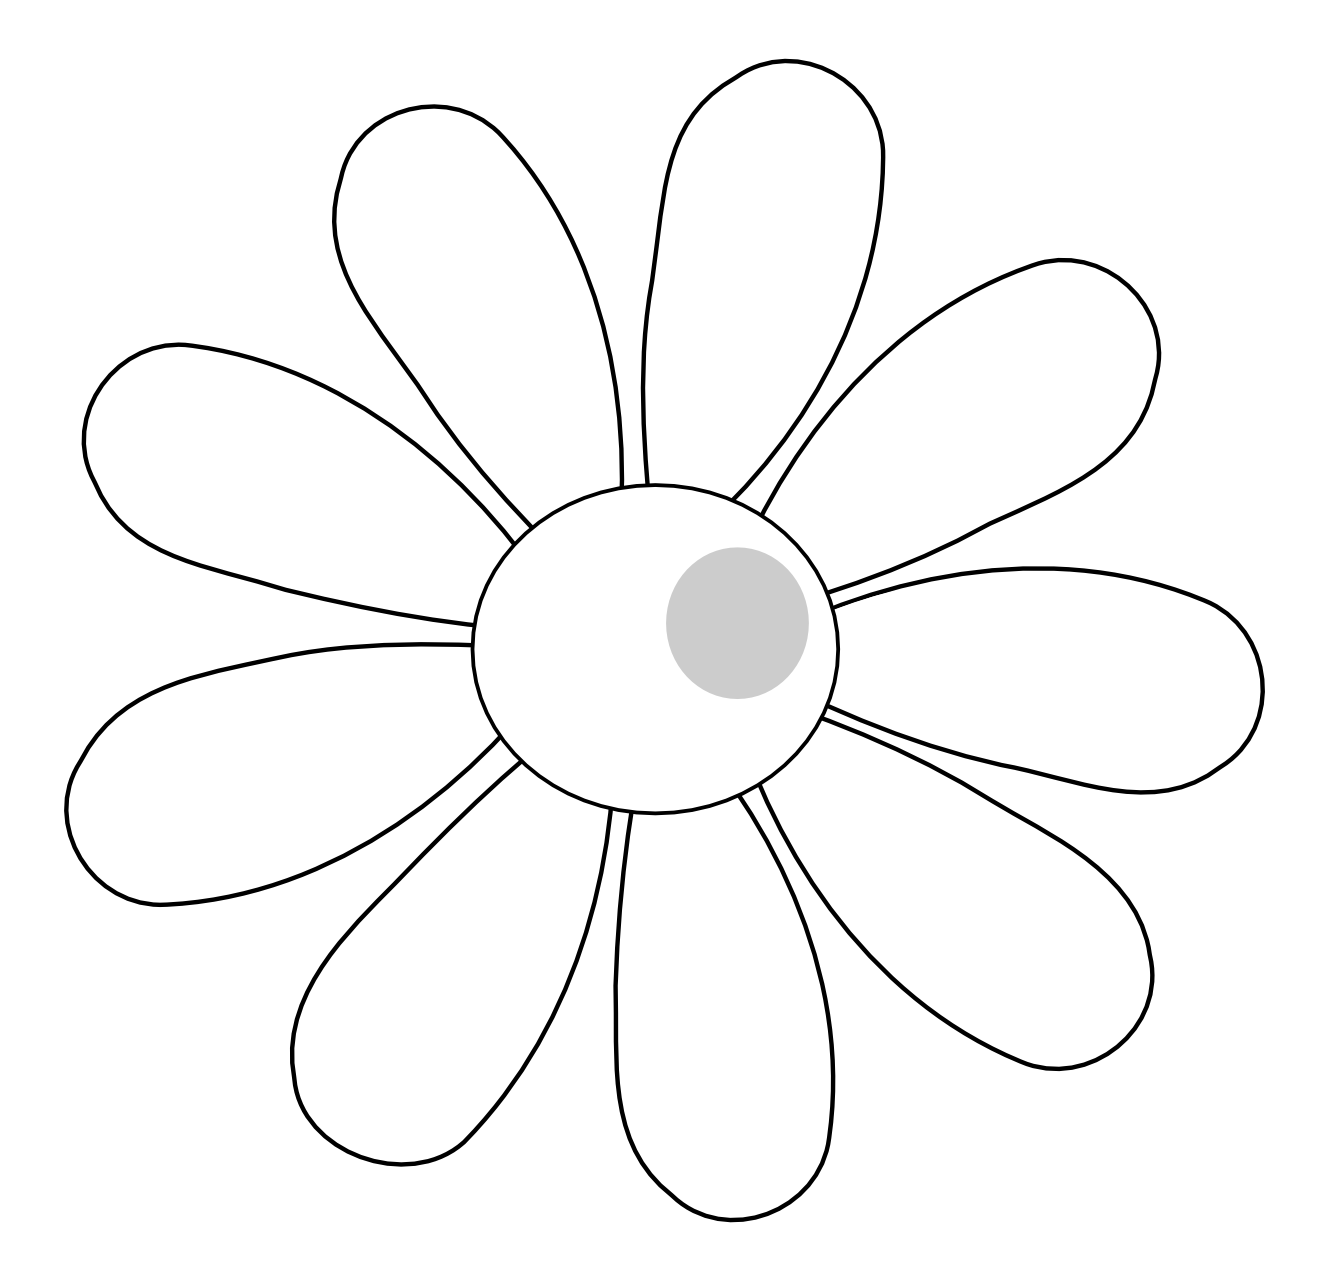 Daisy black and white. Daisies clipart flower day